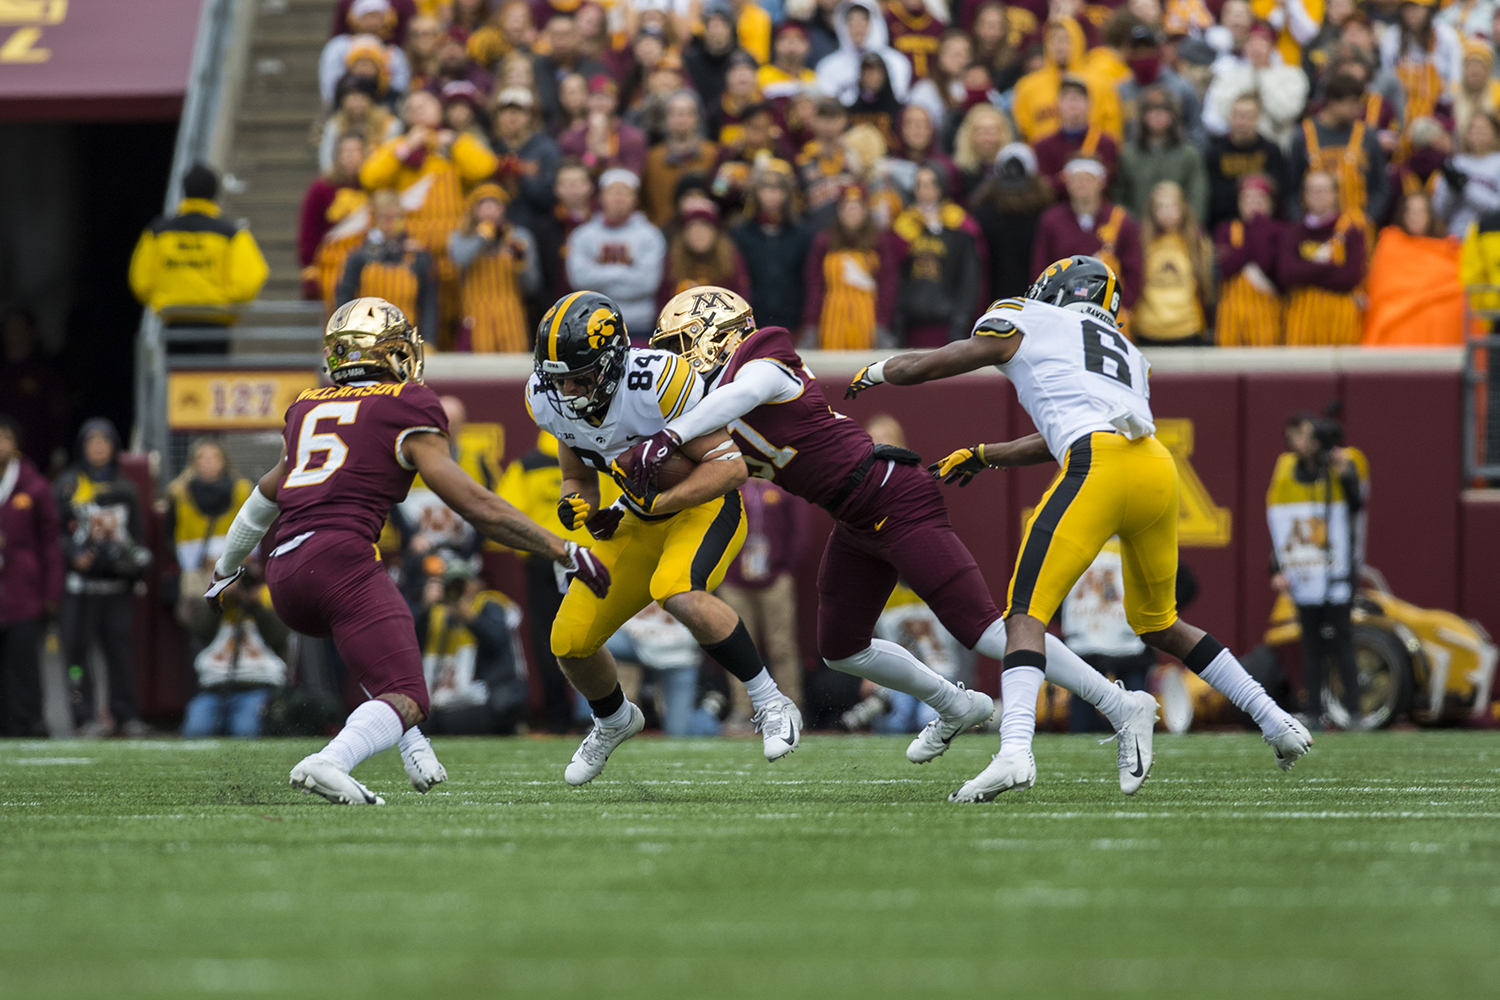 Iowa%27s+Nick+Easley+is+tackled+by+Minnesota%27s+Klondre+Thomas+during+the+Iowa%2FMinnesota+football+game+at+TCF+Bank+Stadium+in+Minneapolis+on+Saturday%2C+October+6%2C+2018.+The+Hawkeyes+defeated+the+Golden+Gophers%2C+48-31.+